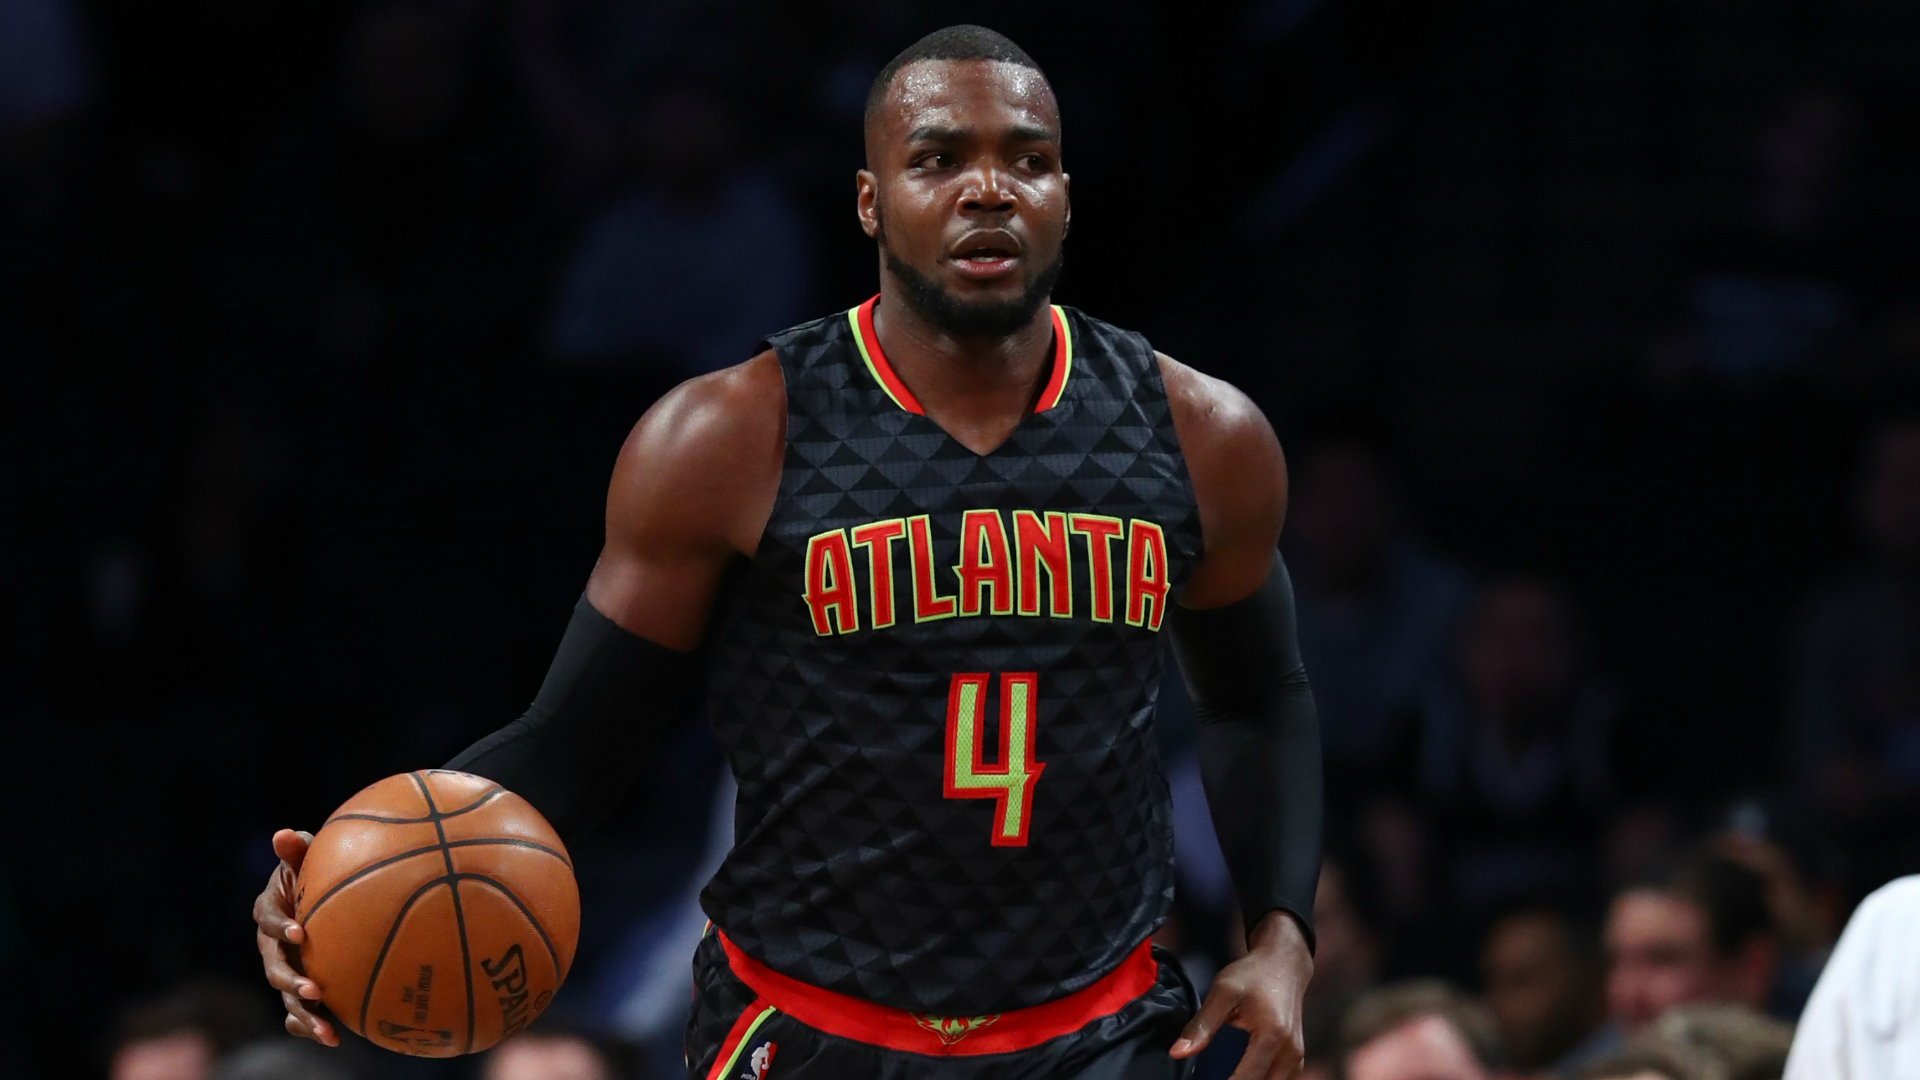 paul millsap: after no offer from hawks, signing with nuggets was